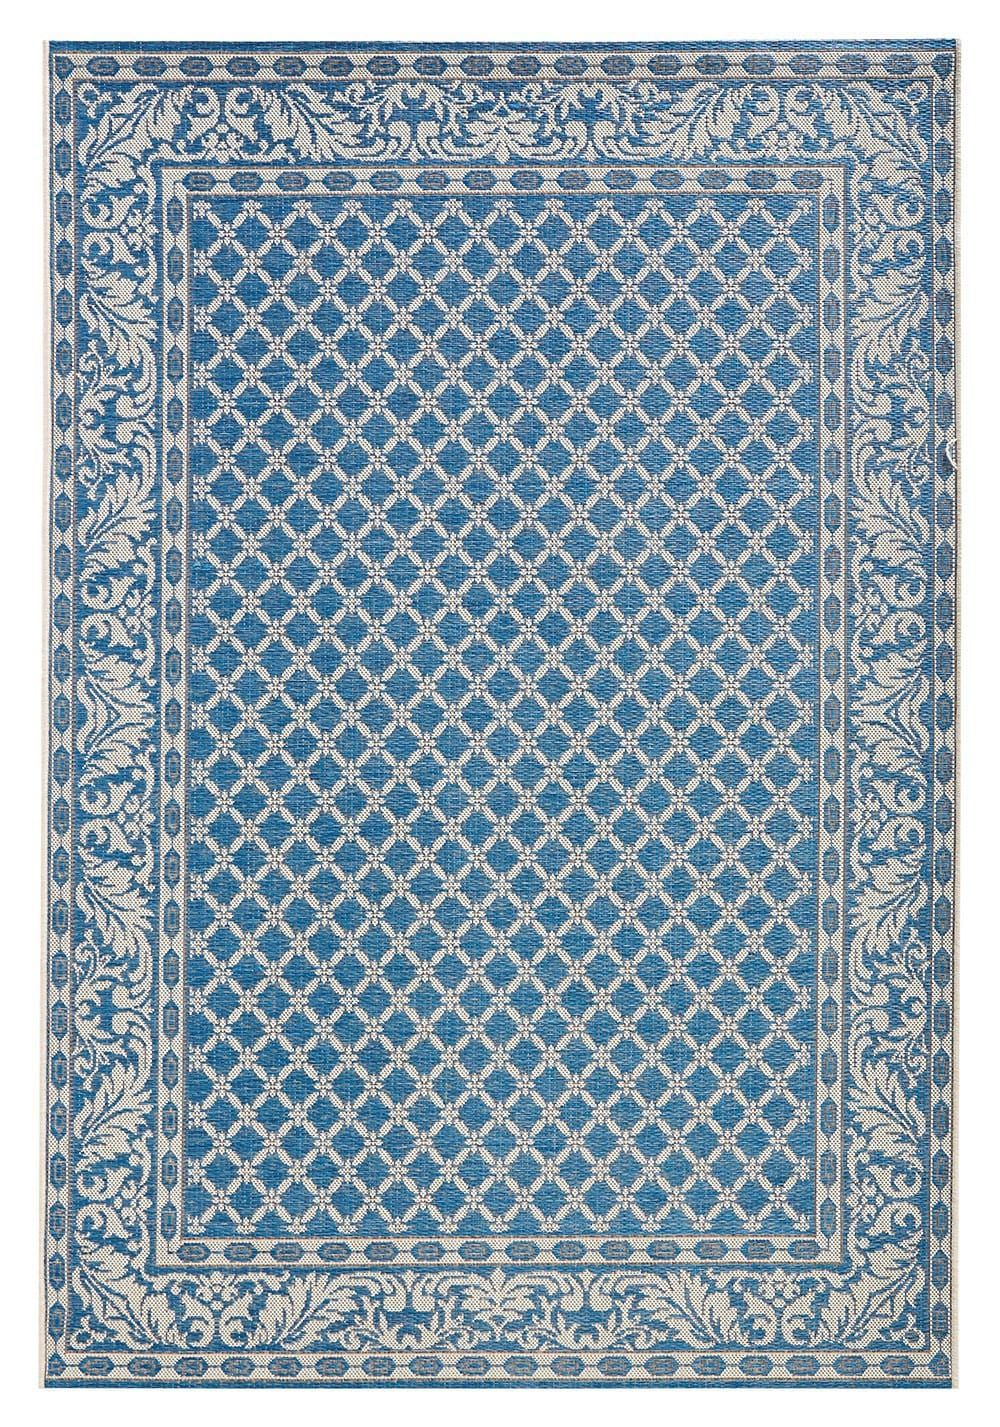 Outdoor Teppich Blau In Und Outdoor Teppich Bougari Royal Blau 102476 In 2019